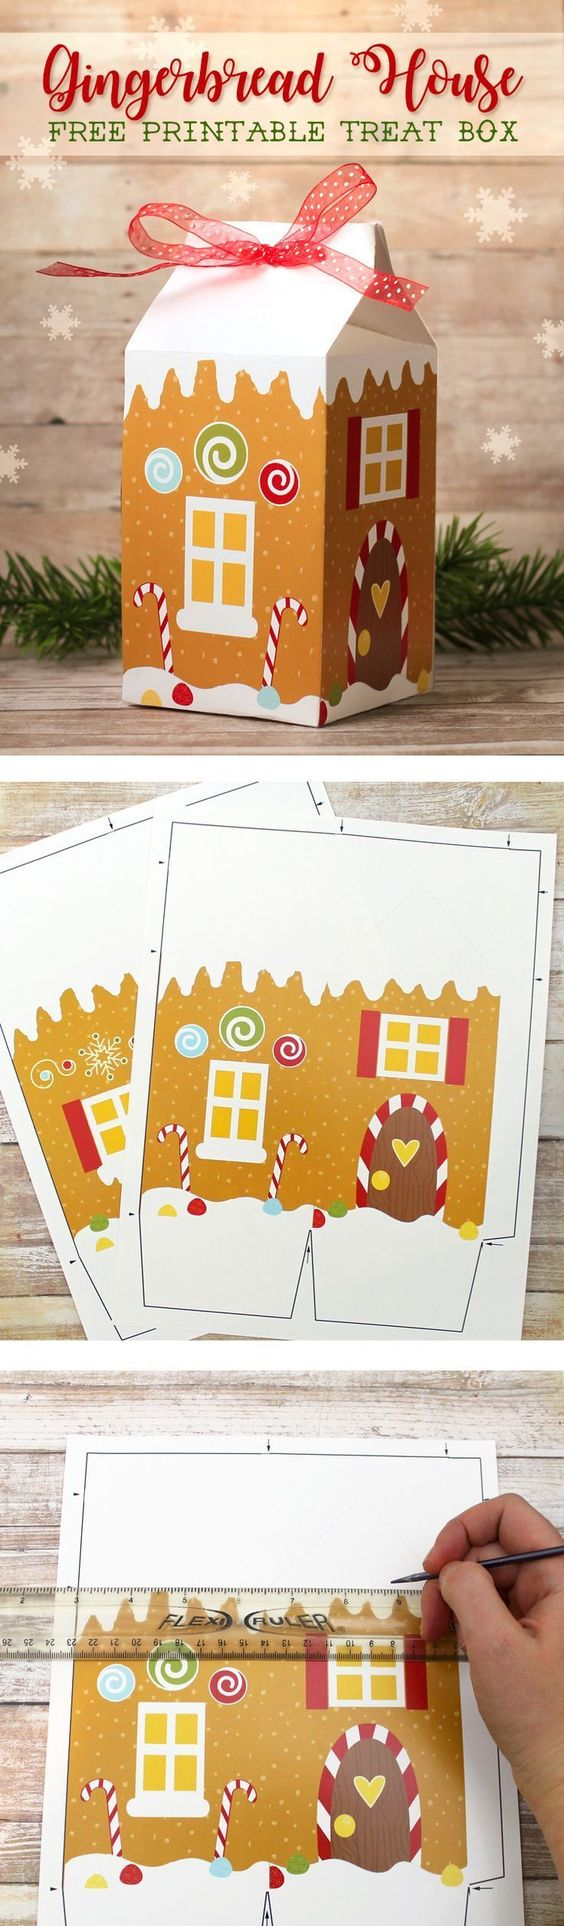 "Free Printable Gingerbread House Christmas Treat Boxes | The Craft Patch ""This is the cutest way to package up Christmas goodies for neighbor gifts."""